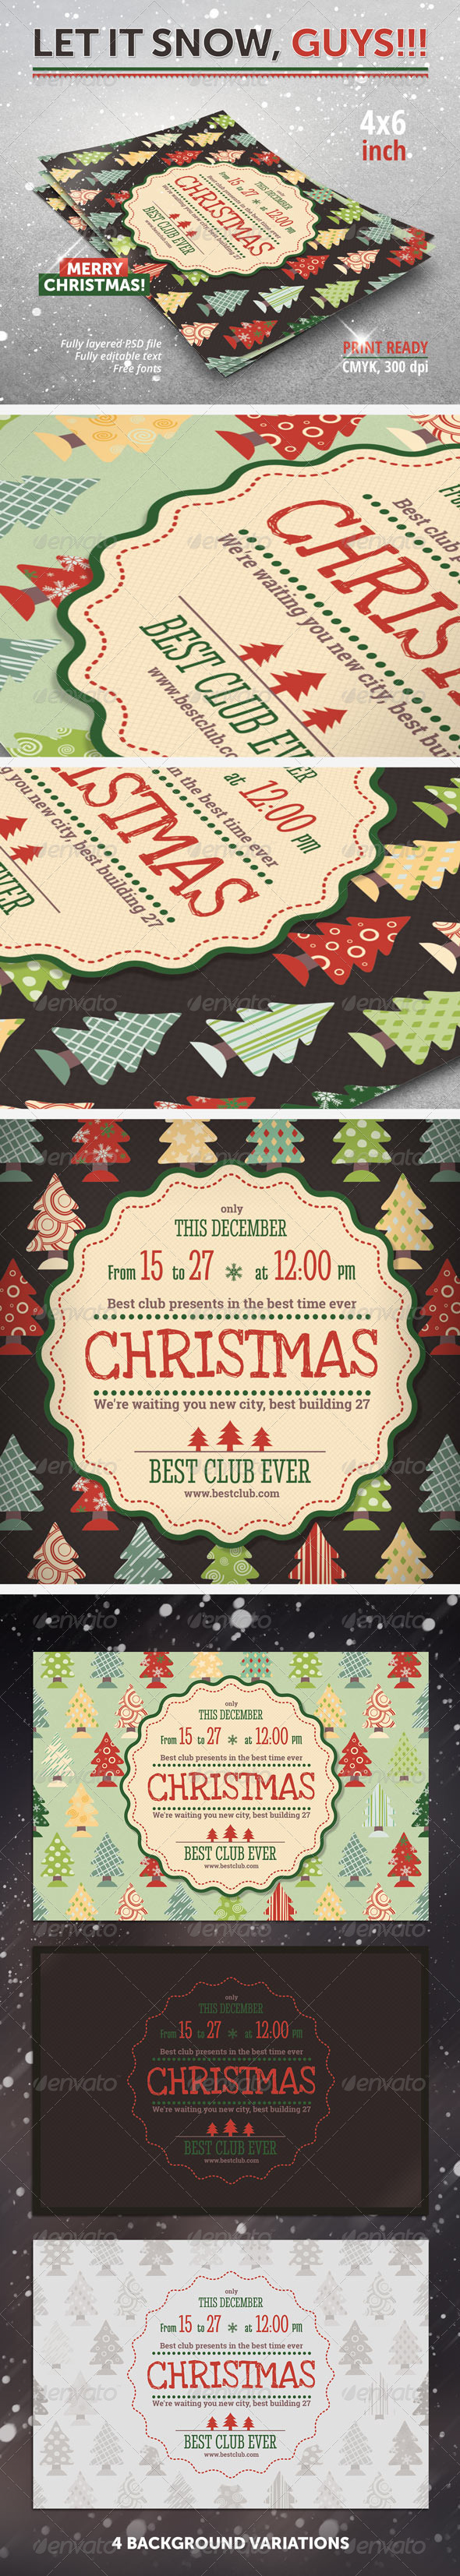 GraphicRiver Christmas New Year Party Flyer 6260381